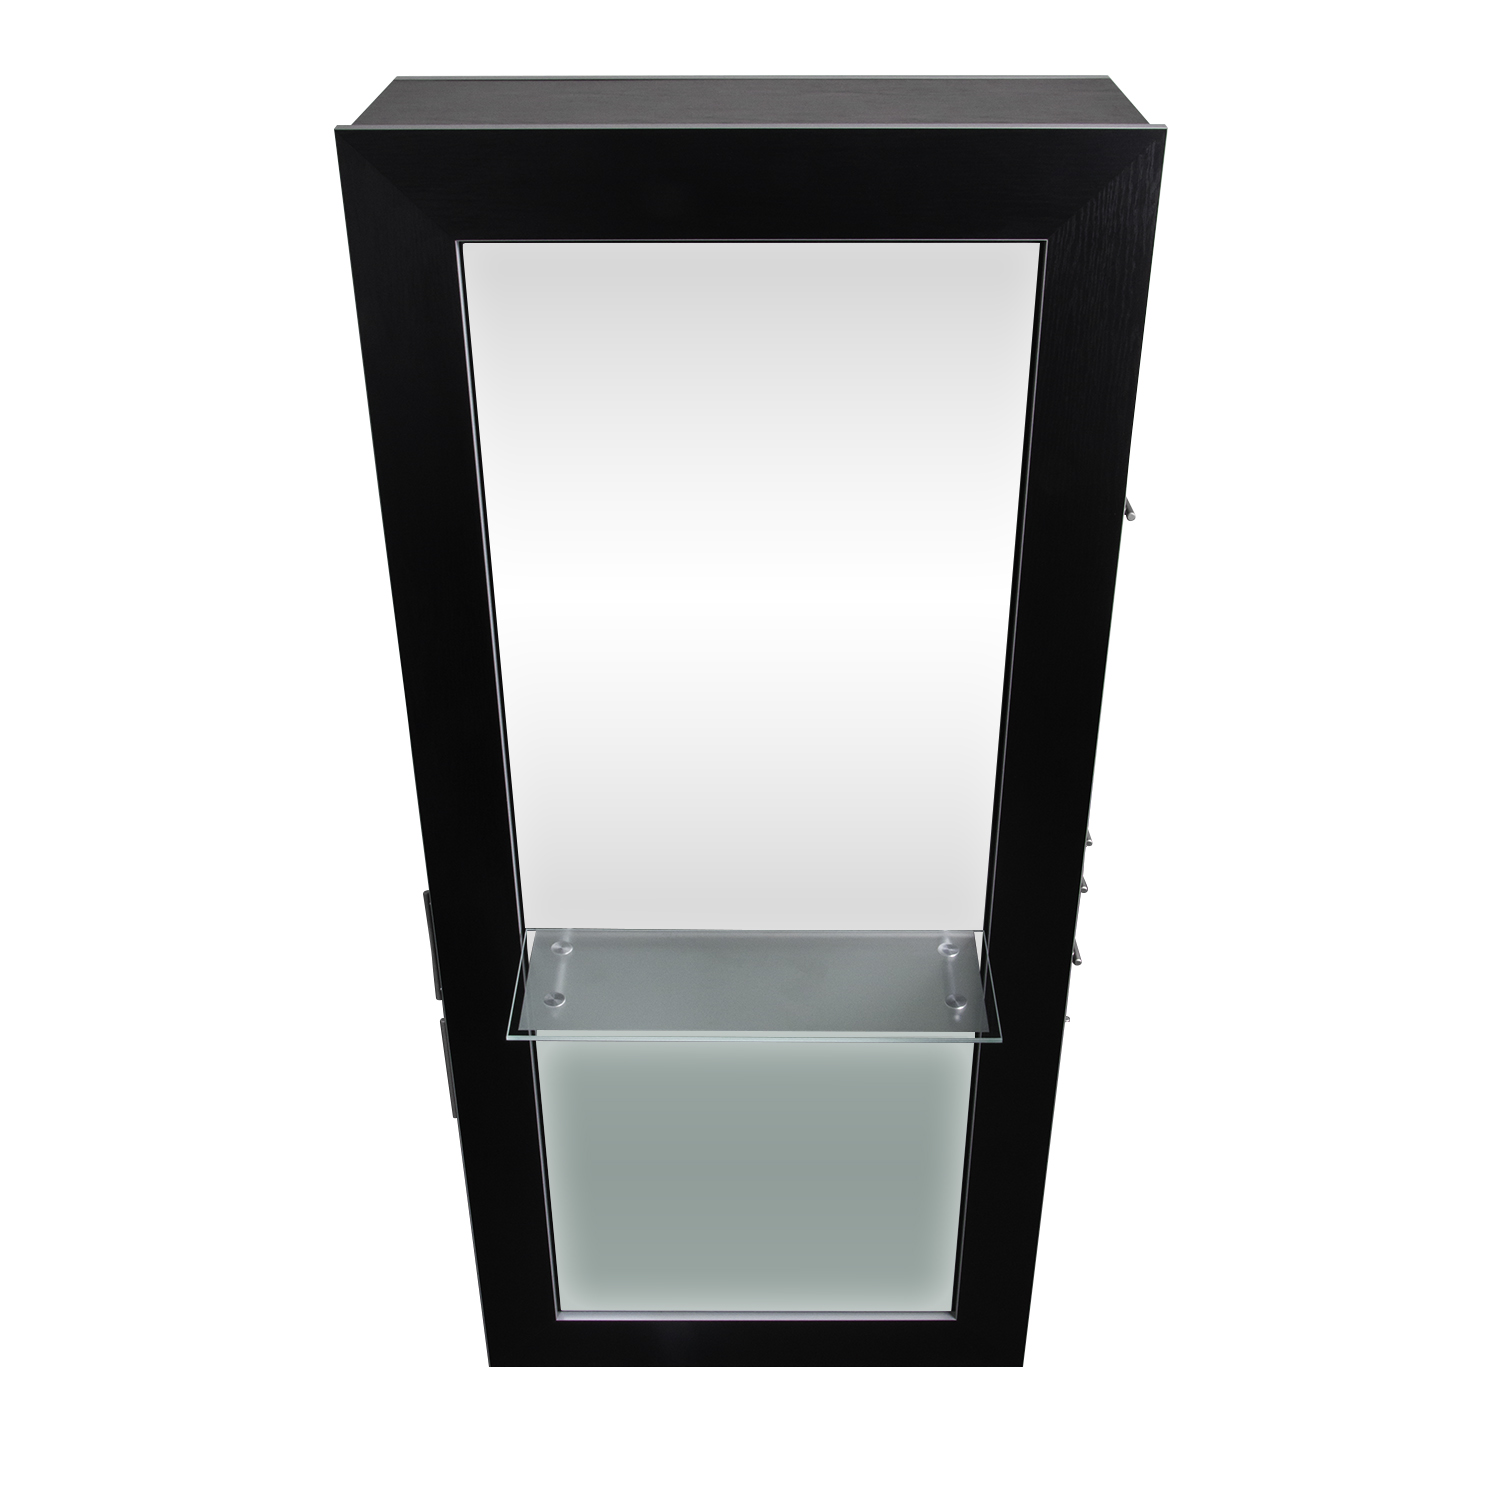 Fusion Mirrored Styling Station Black alternative product image 6